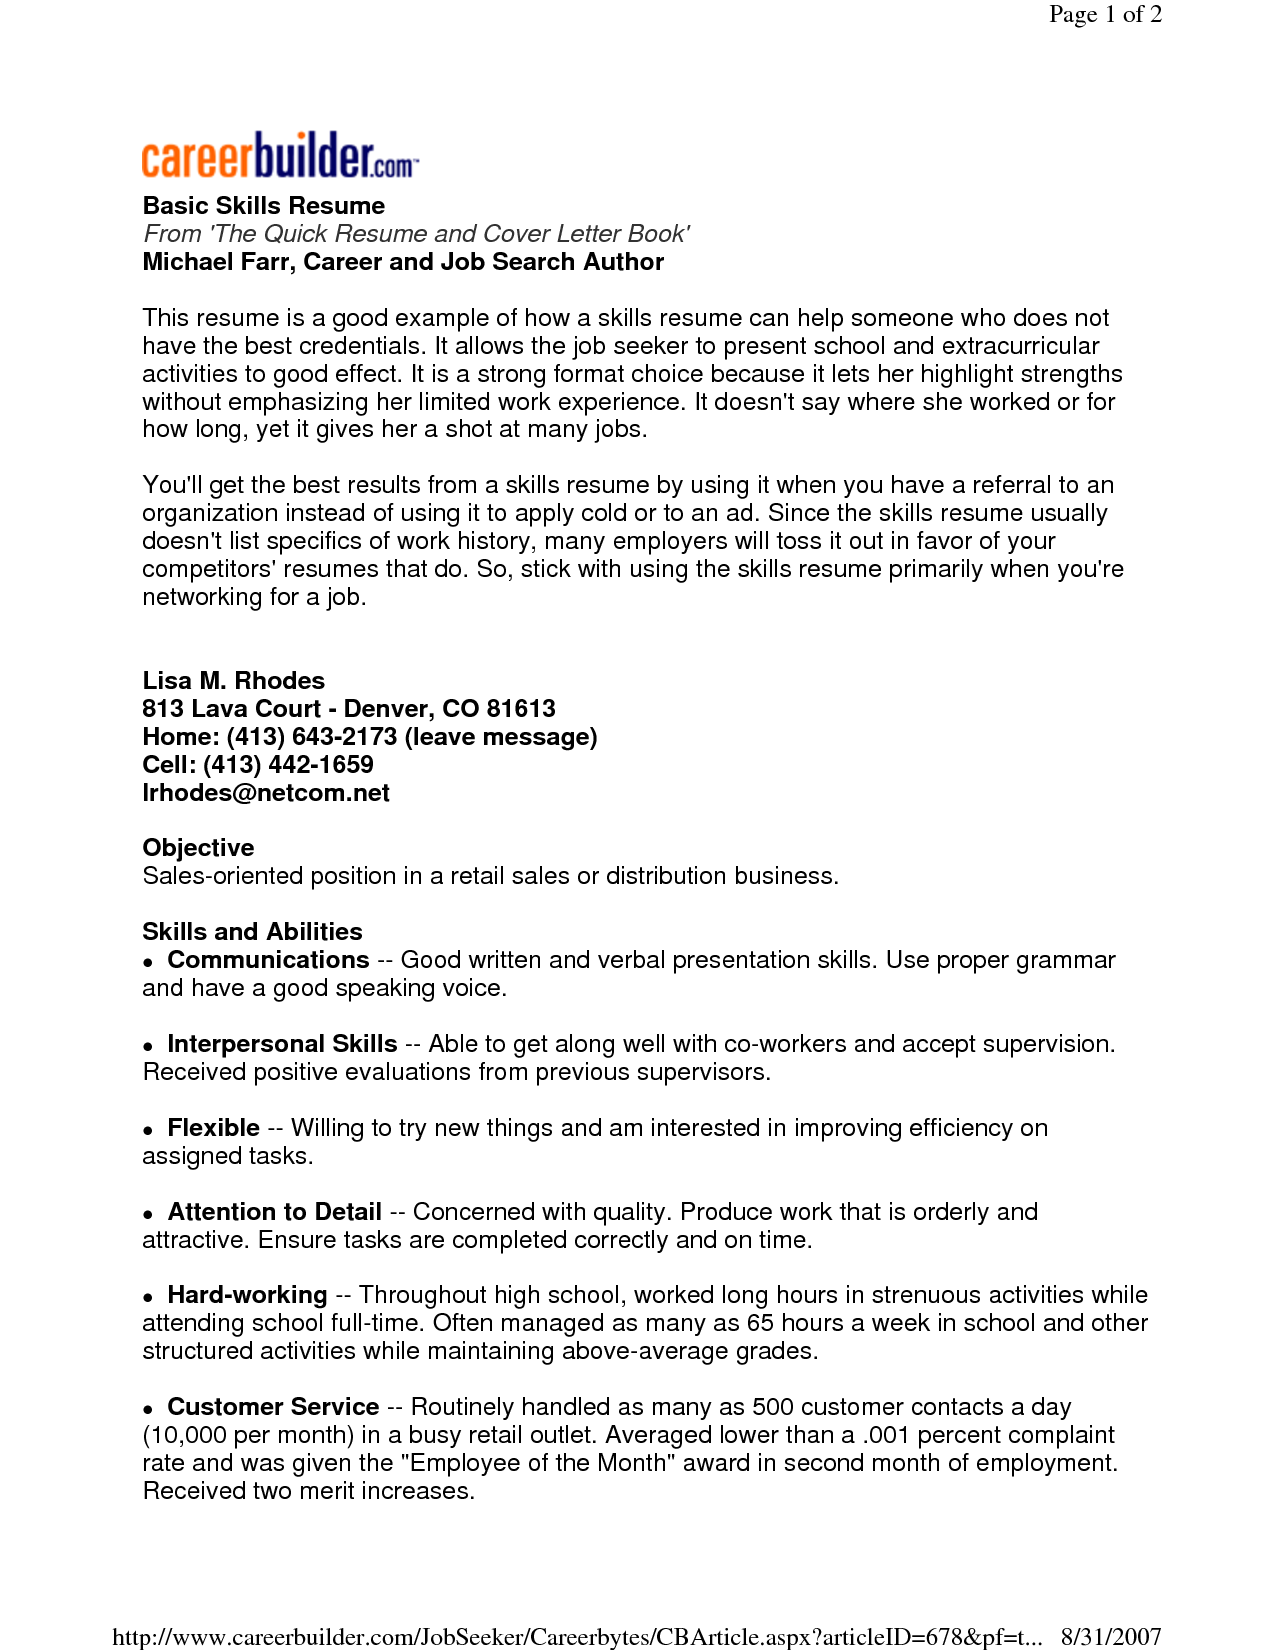 Call Center Floor Manager Sample Resume Alluring Key Skills  Pinterest  Sample Resume Resume Examples And Resume .